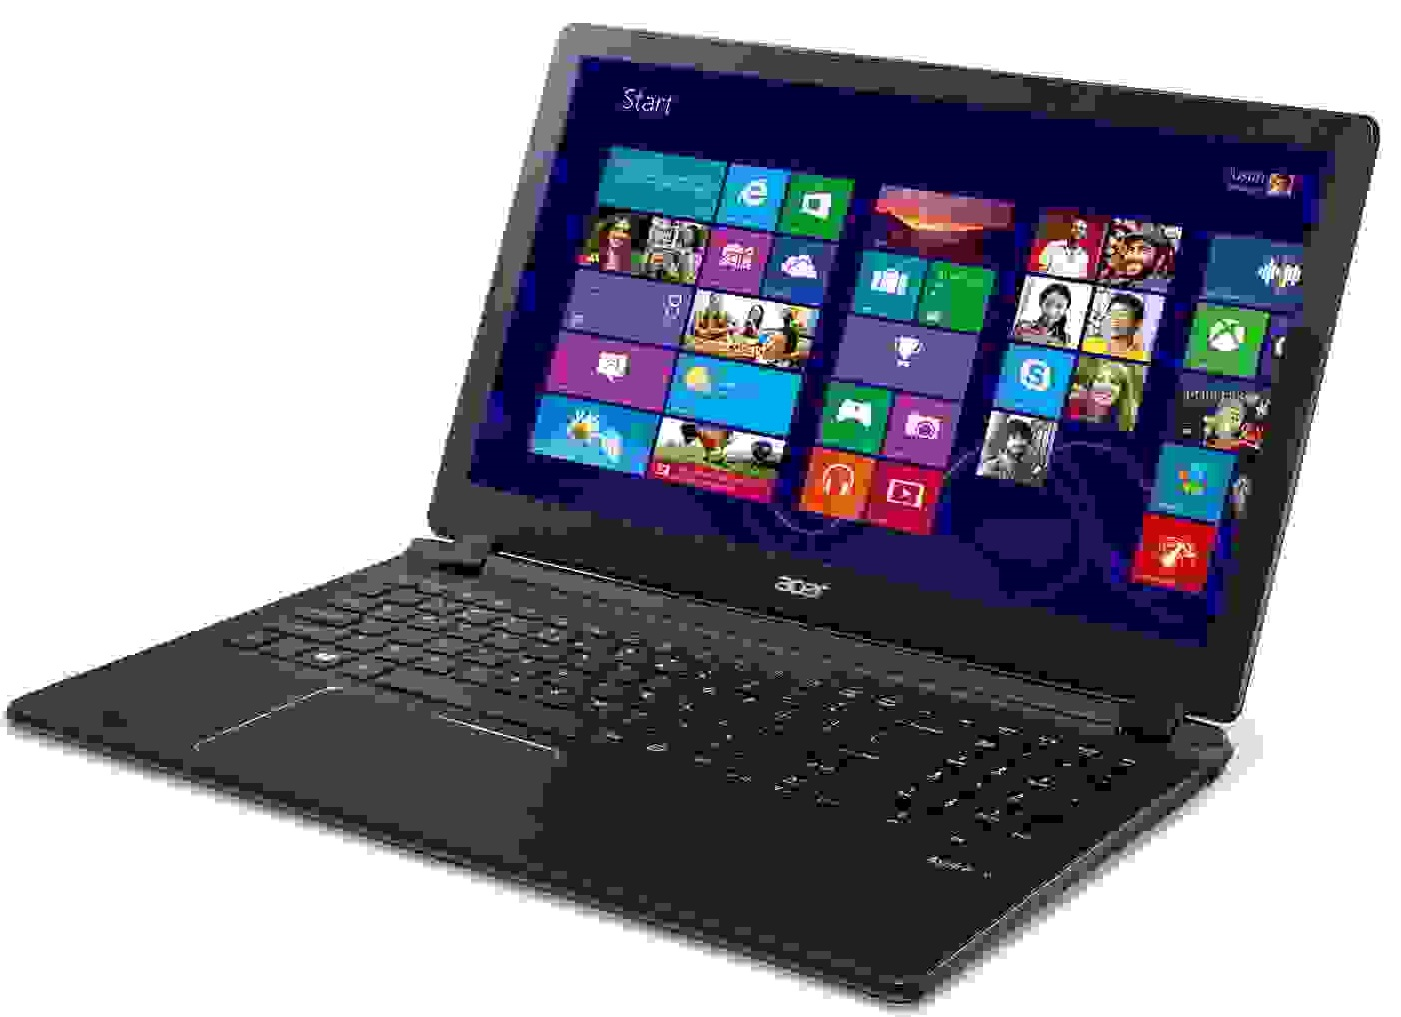 acer aspire drivers for windows 10